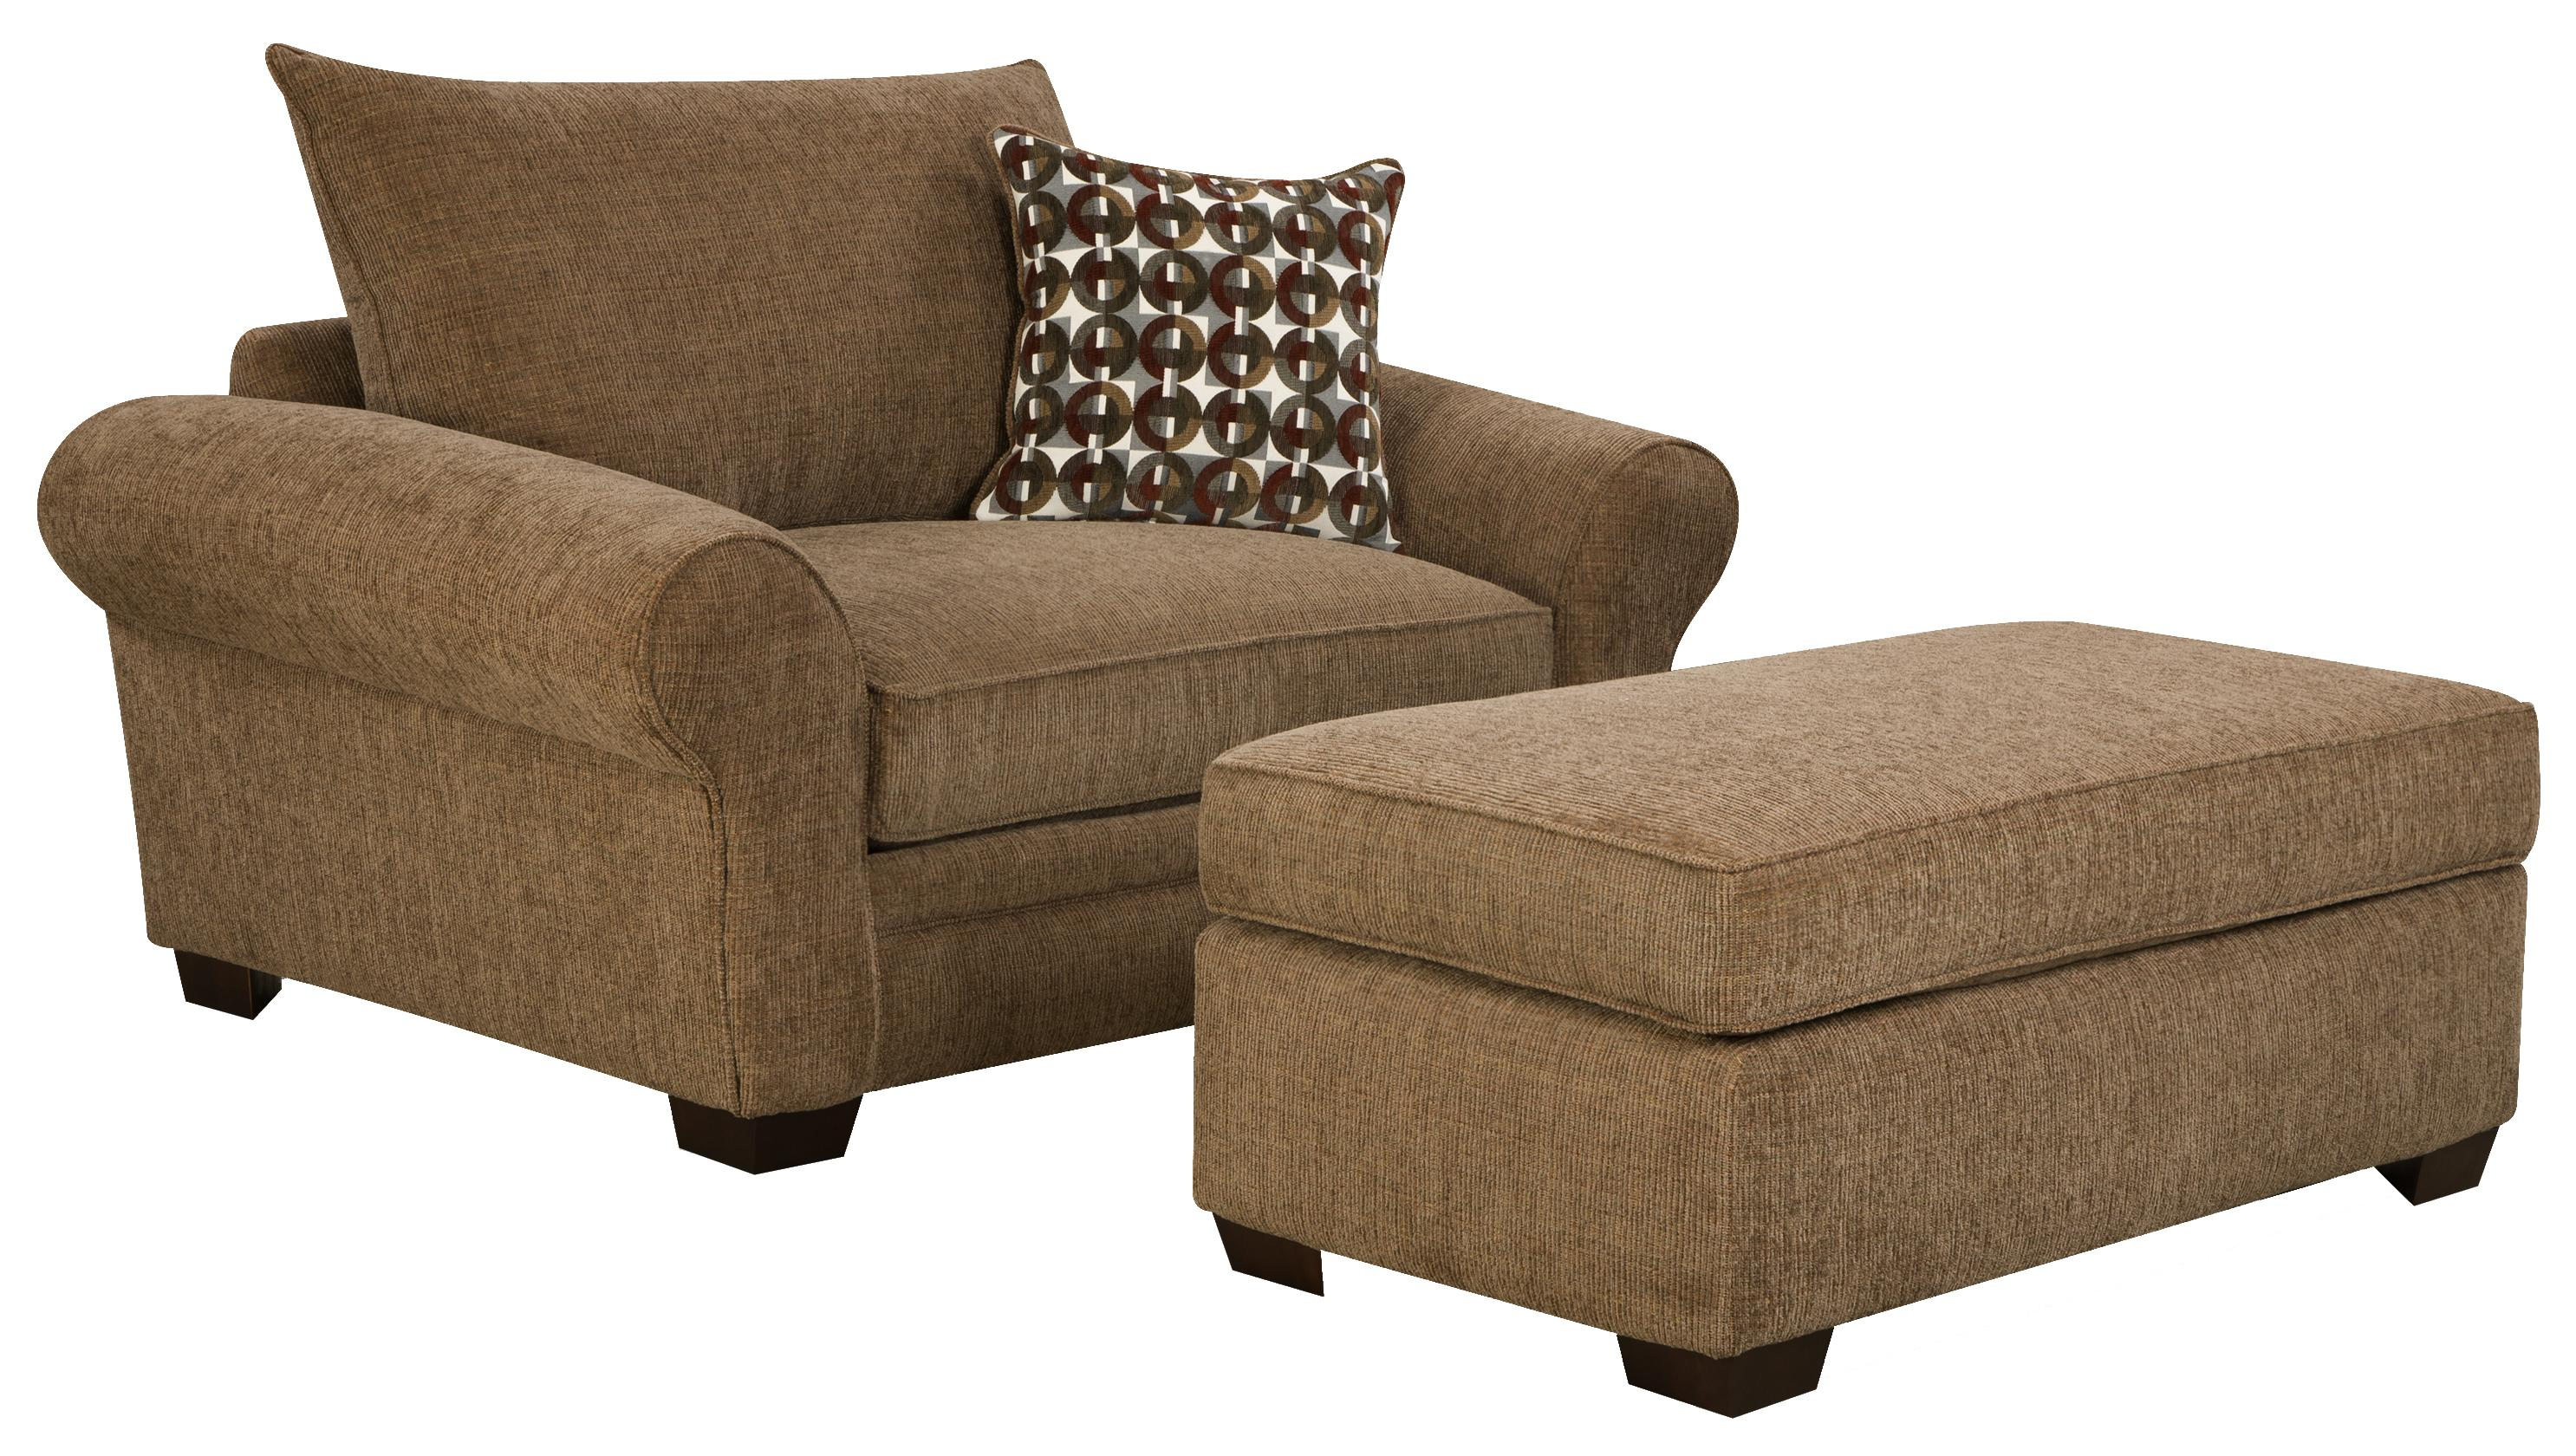 Comfy Chair With Ottoman 5460 Extra Large Chair And A Half And Ottoman Set For Casual